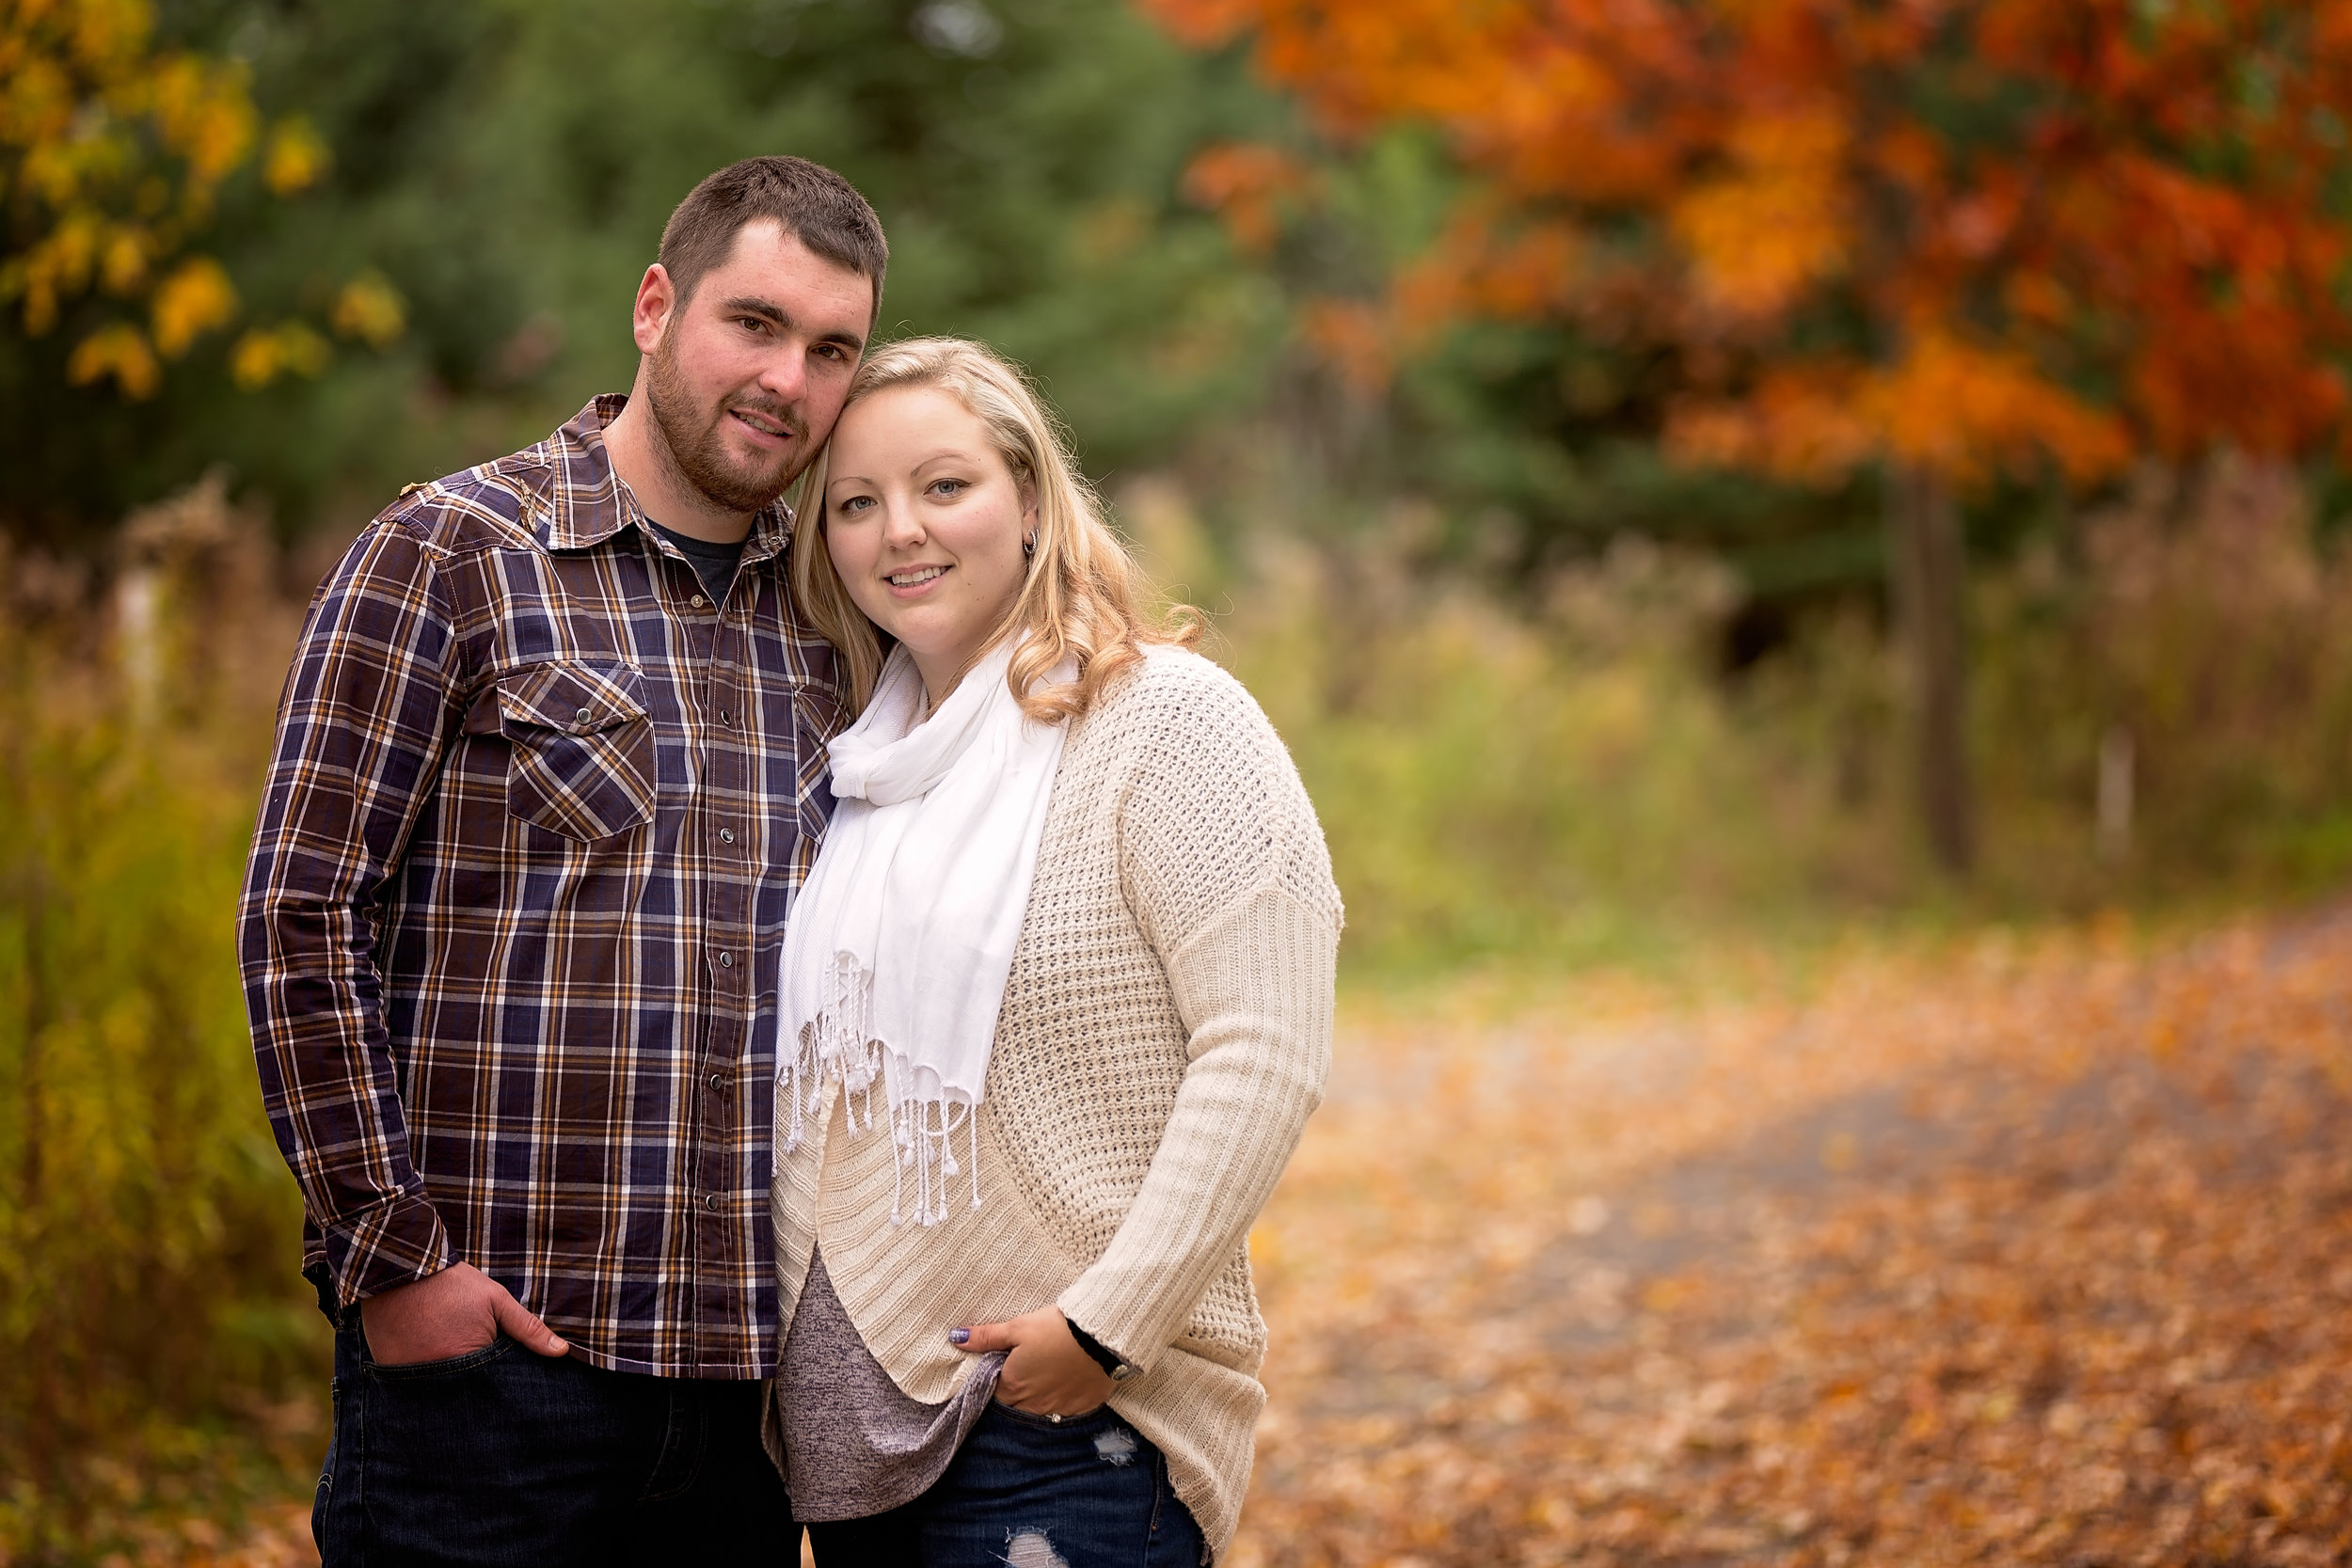 Pam and Mike Engagement-53.jpg